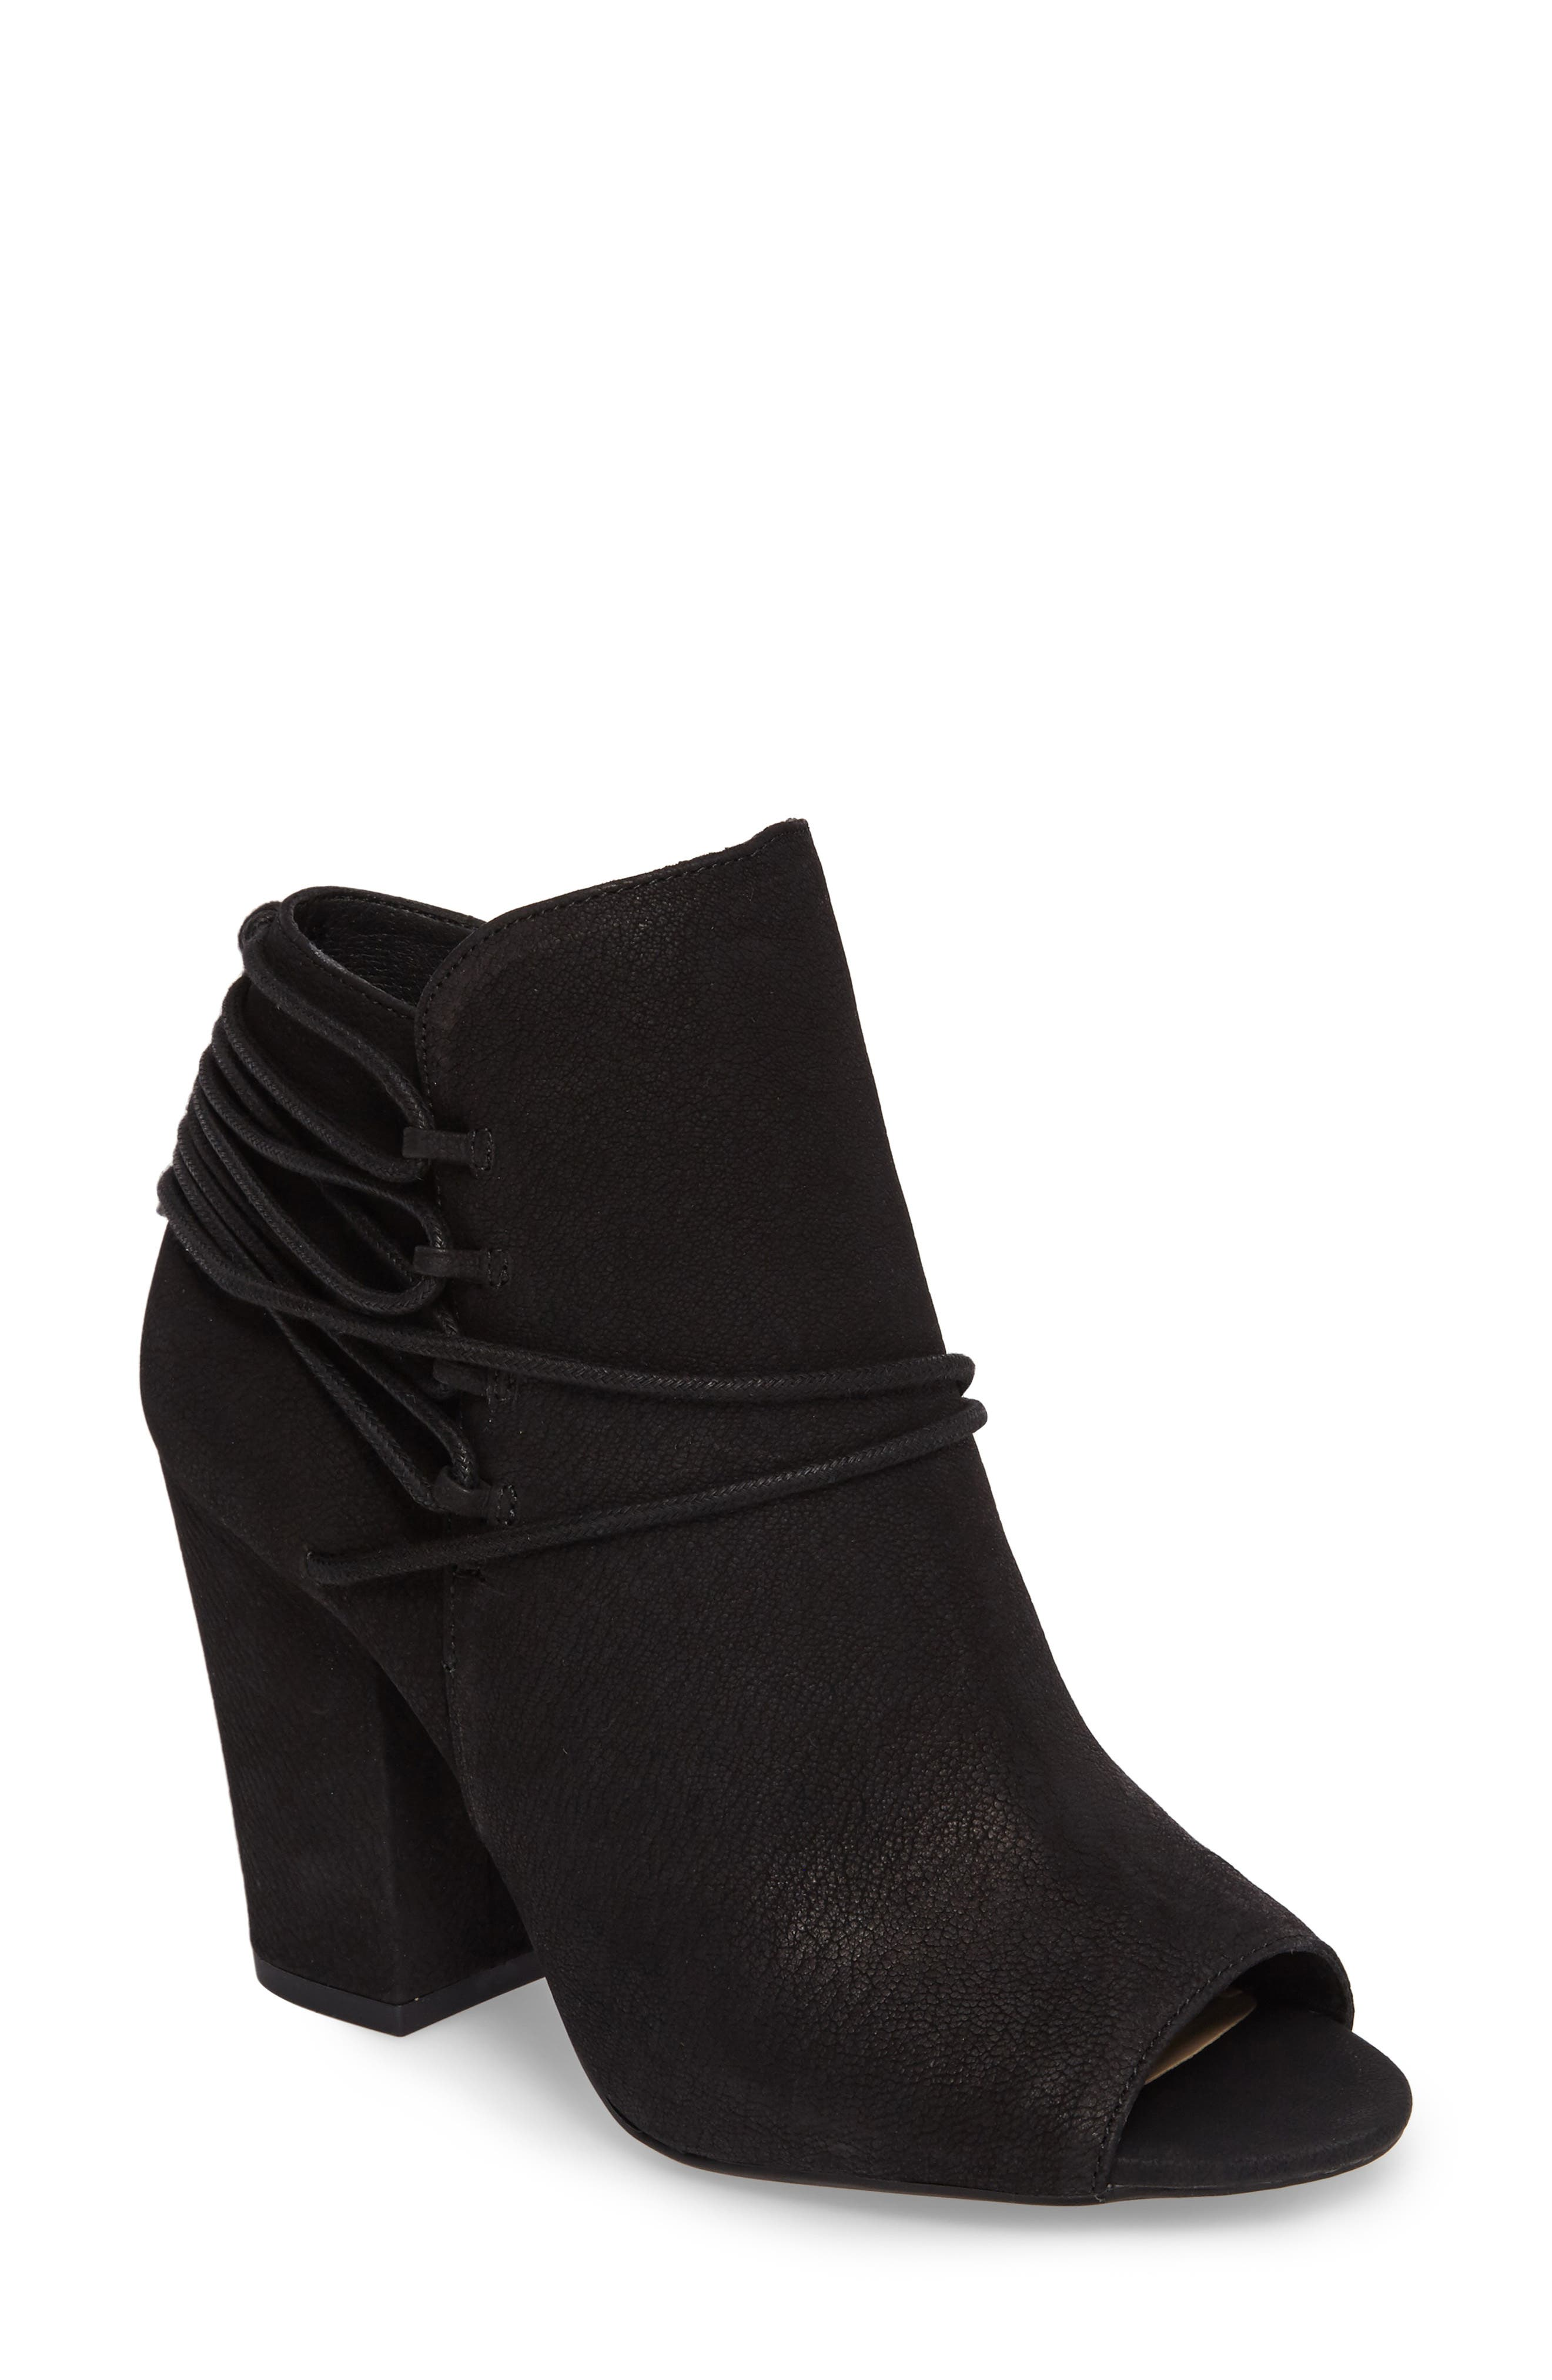 Jessica Simpson Shoes for Women | Nordstrom